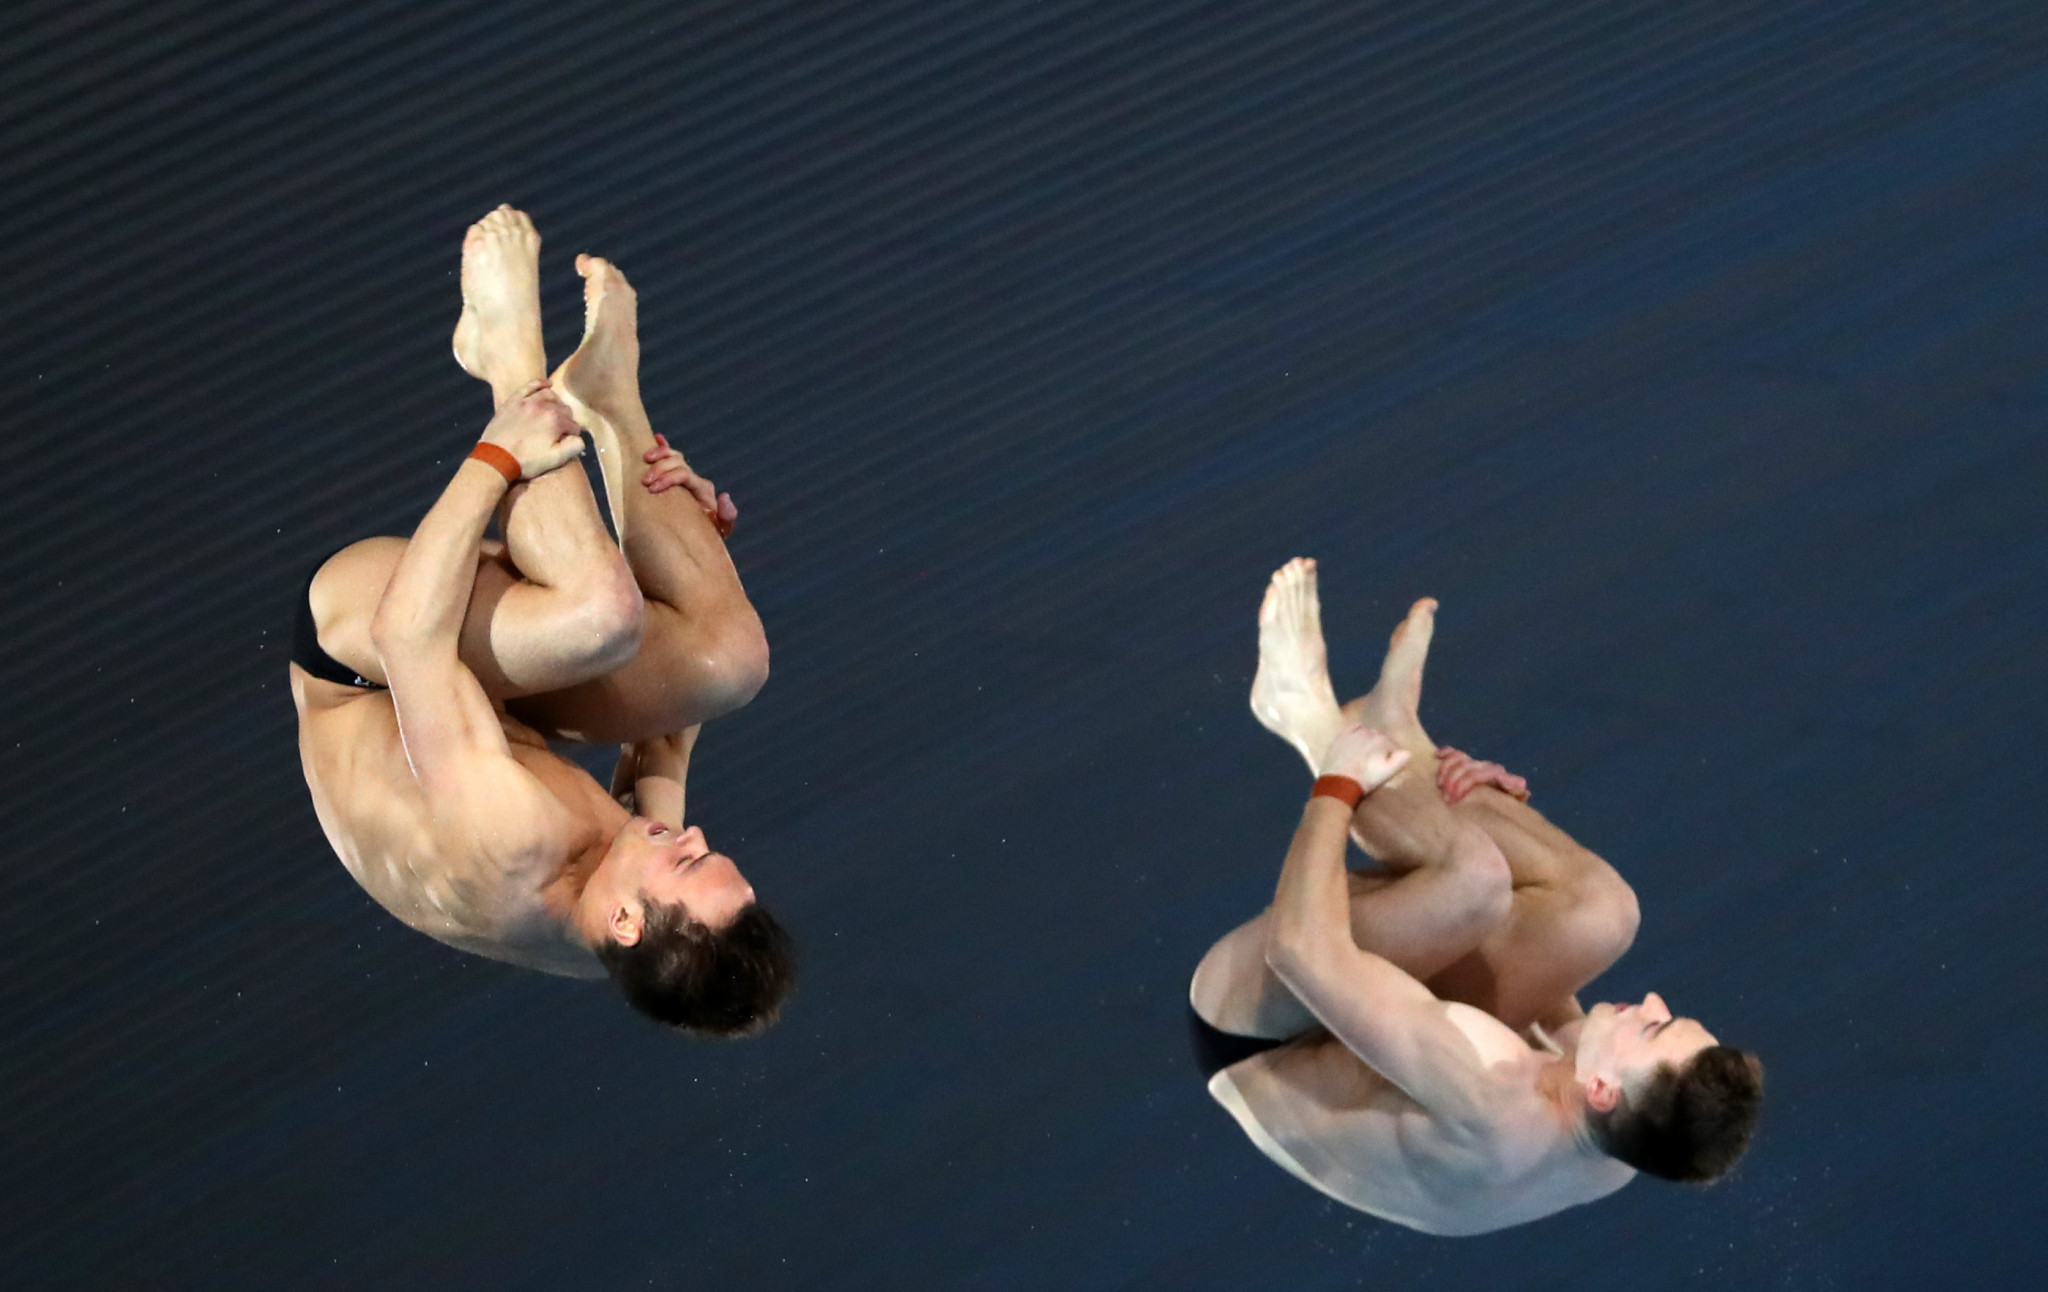 Daley and Lee deliver home gold at FINA Diving World Series in London